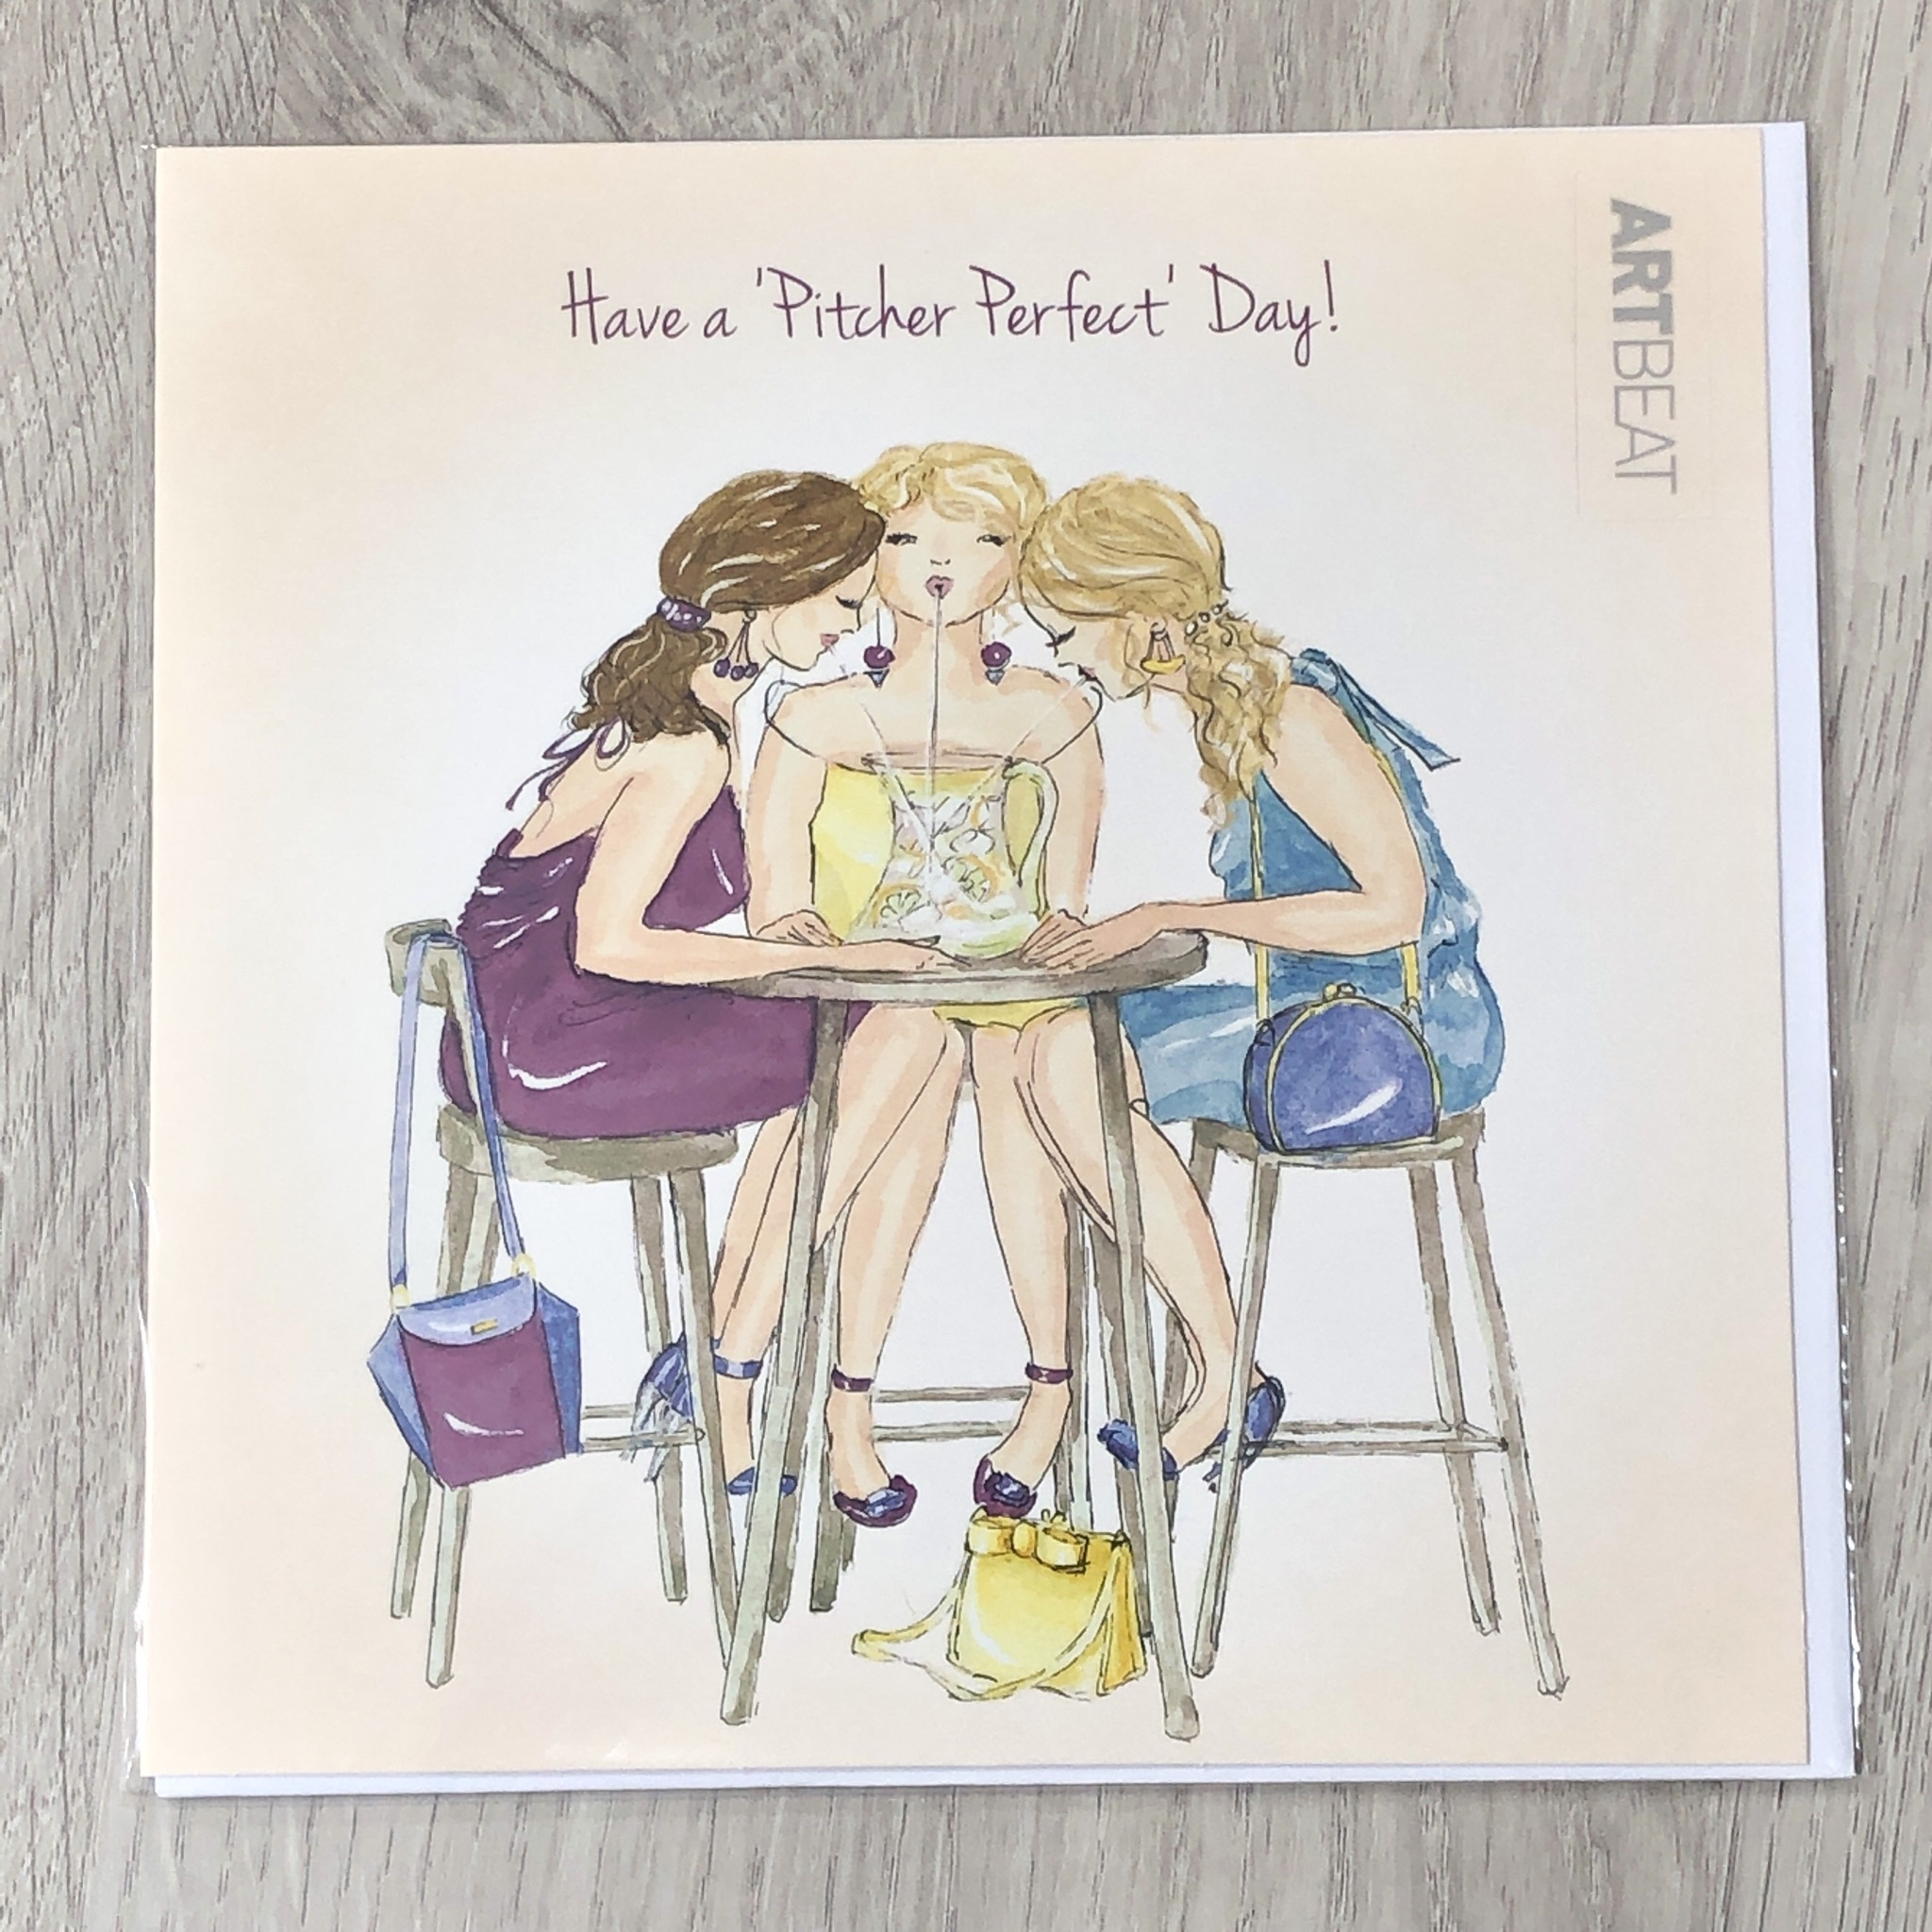 Birthday card- Have a pitcher perfect day!